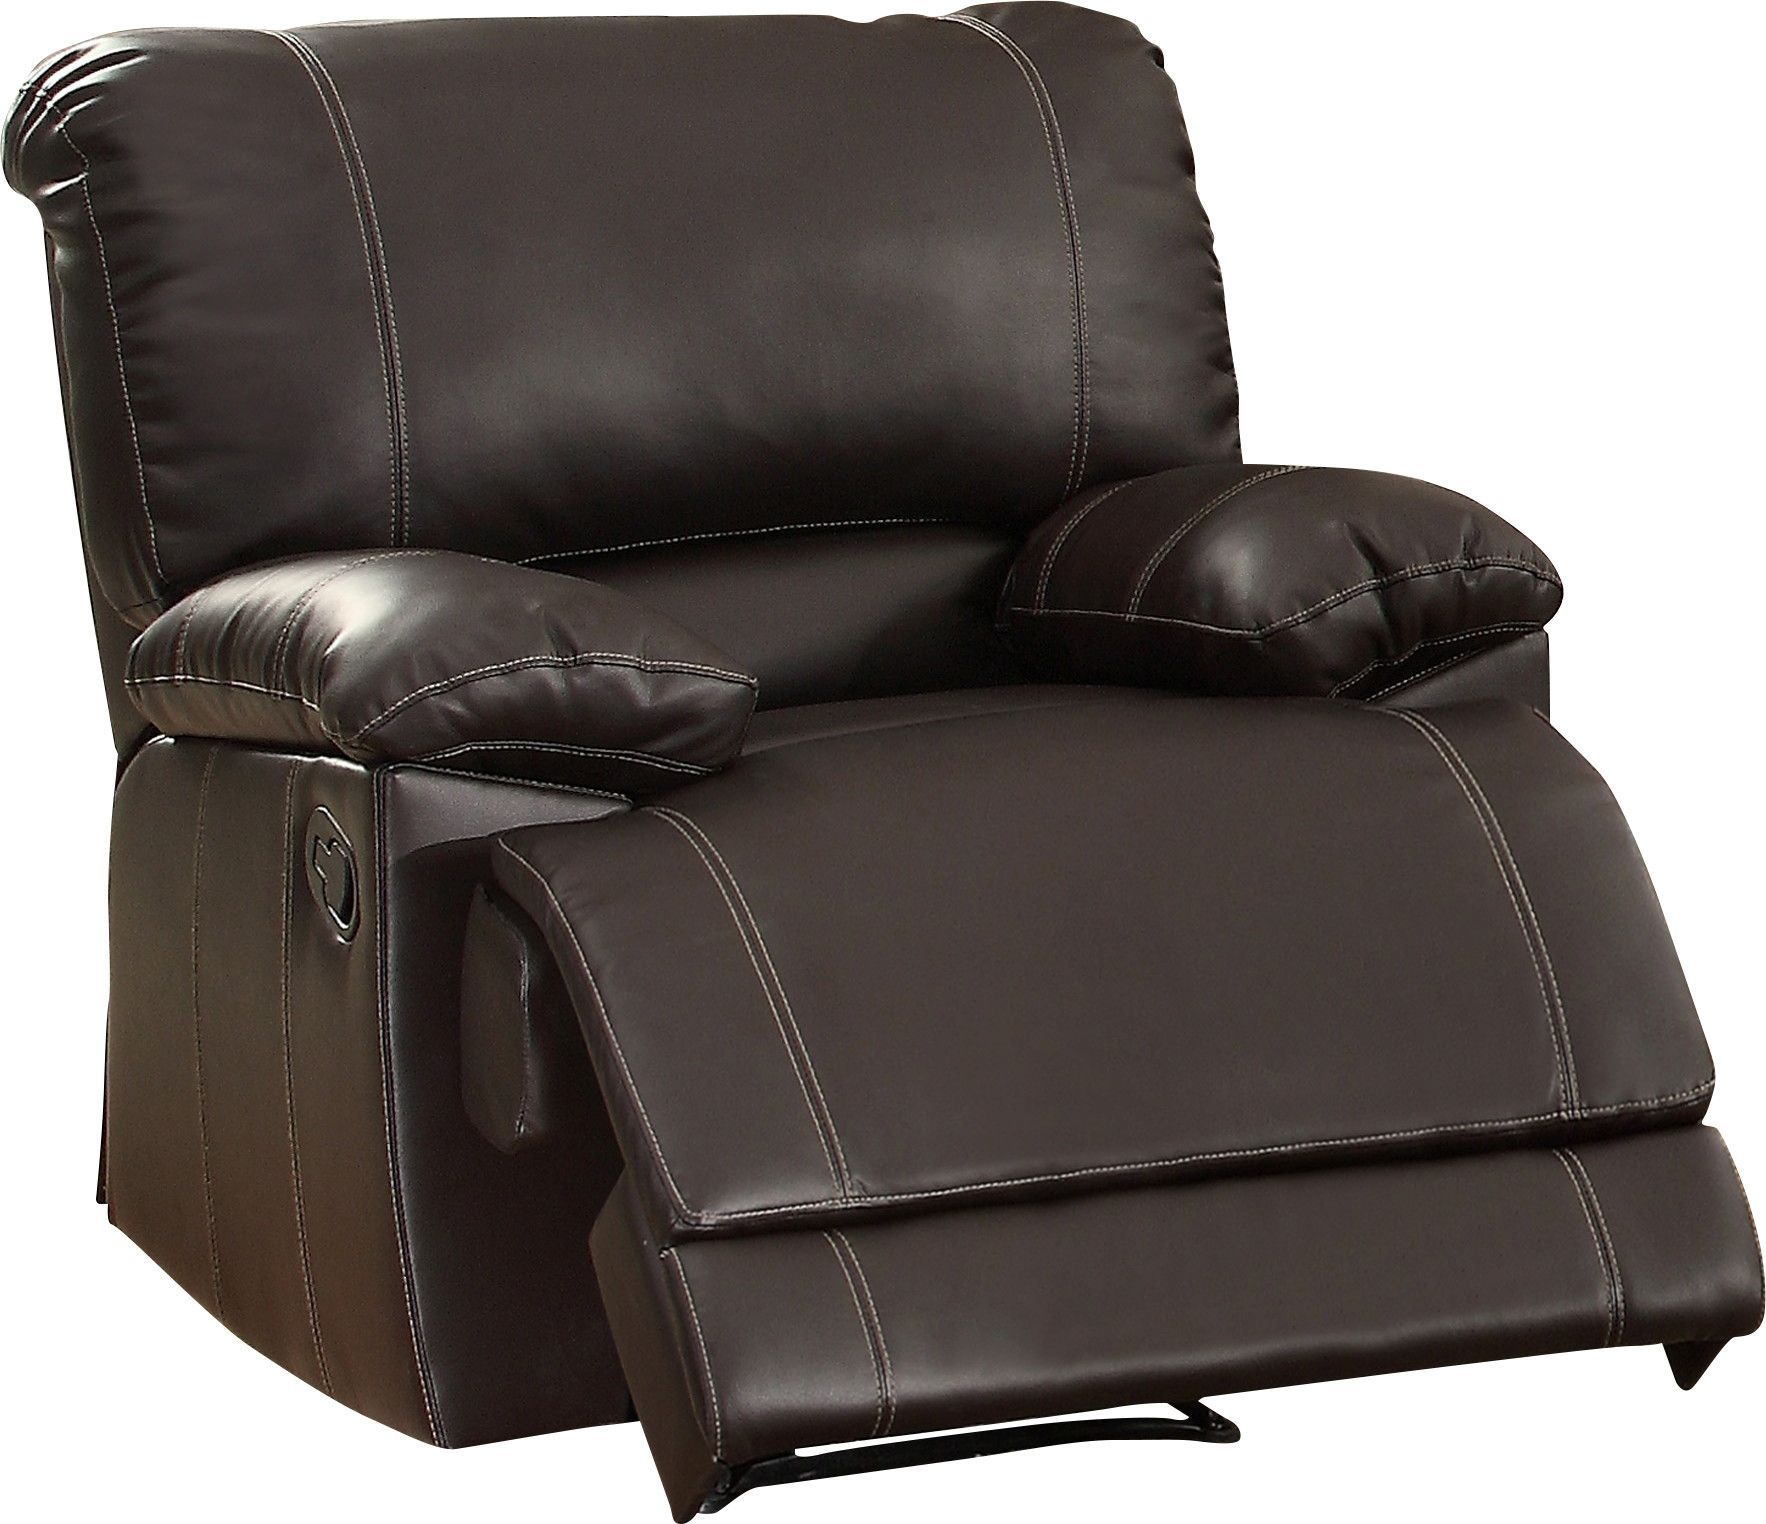 Edgar Manual Recliner in 2020 Recliner chair, Recliner